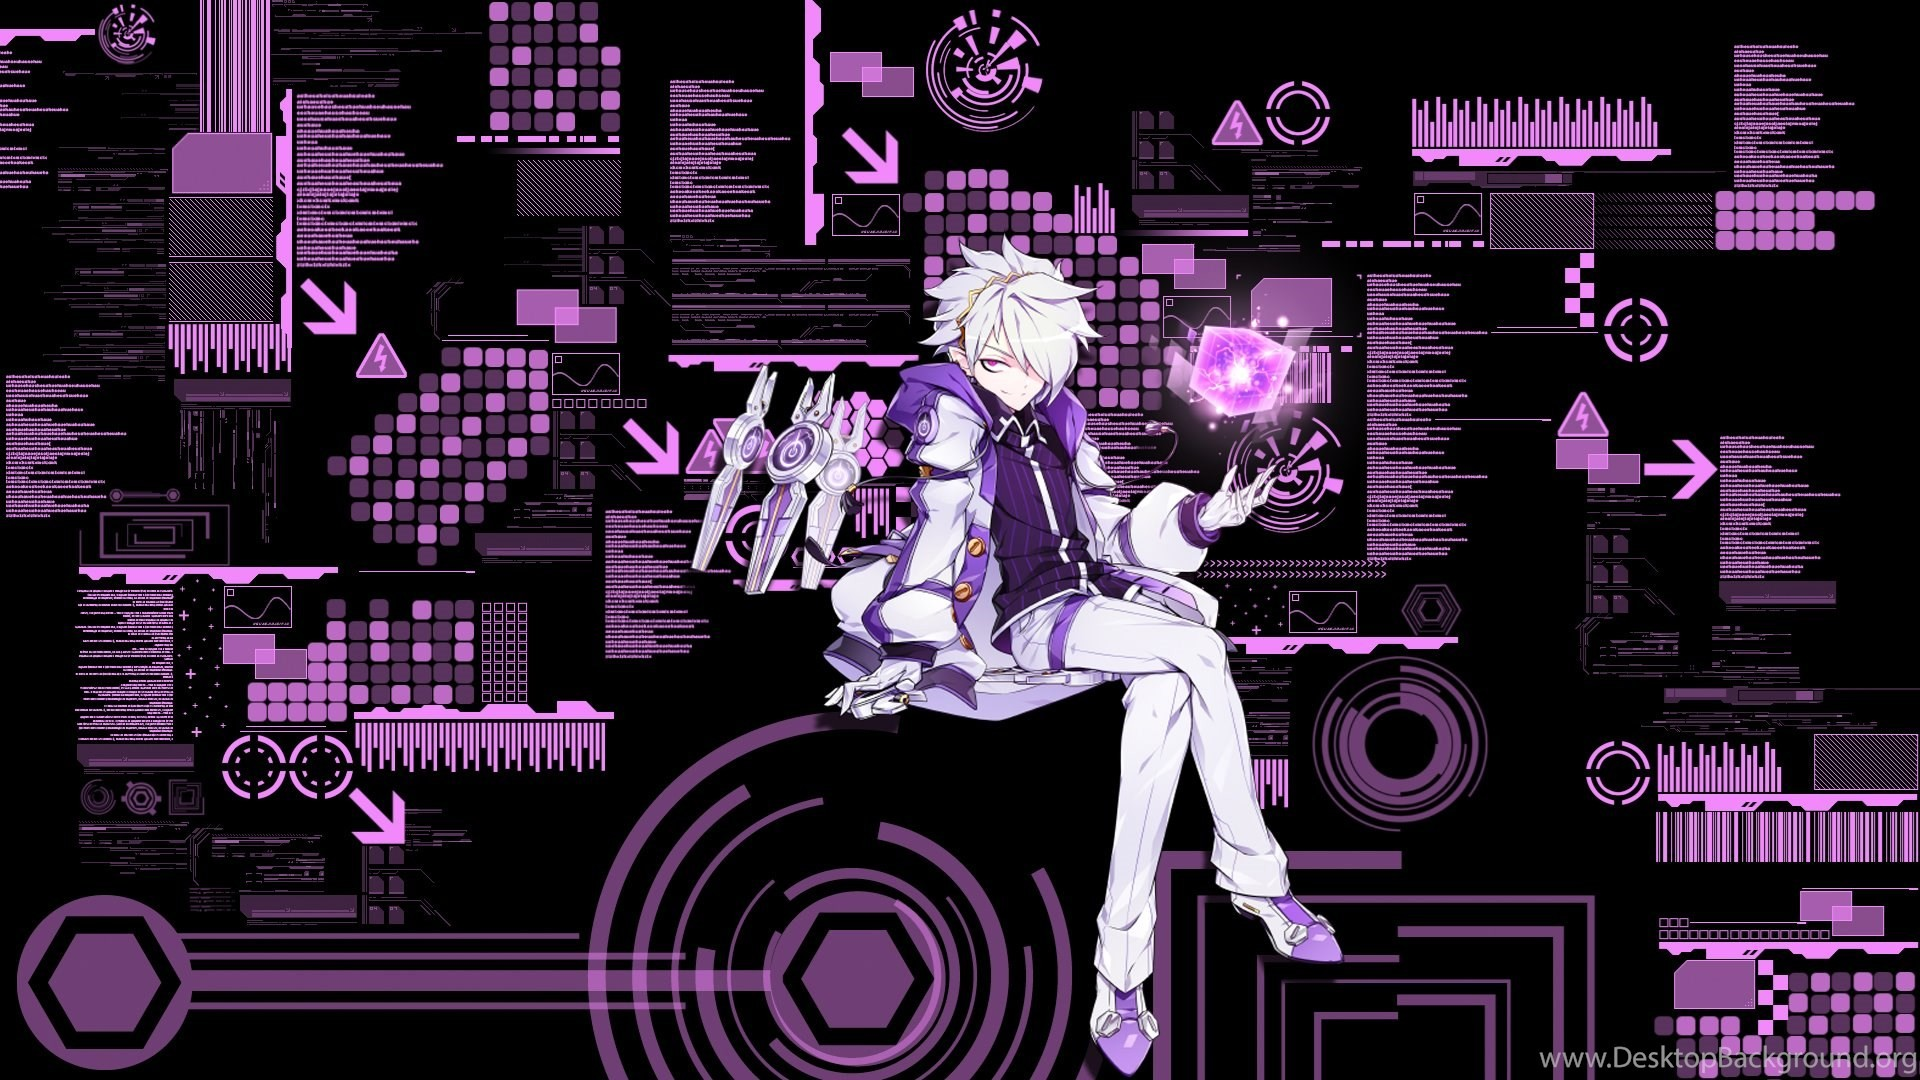 1920x1080 DeviantArt: More Like Elsword:Add Time Tracer Wallpapers 2 By .